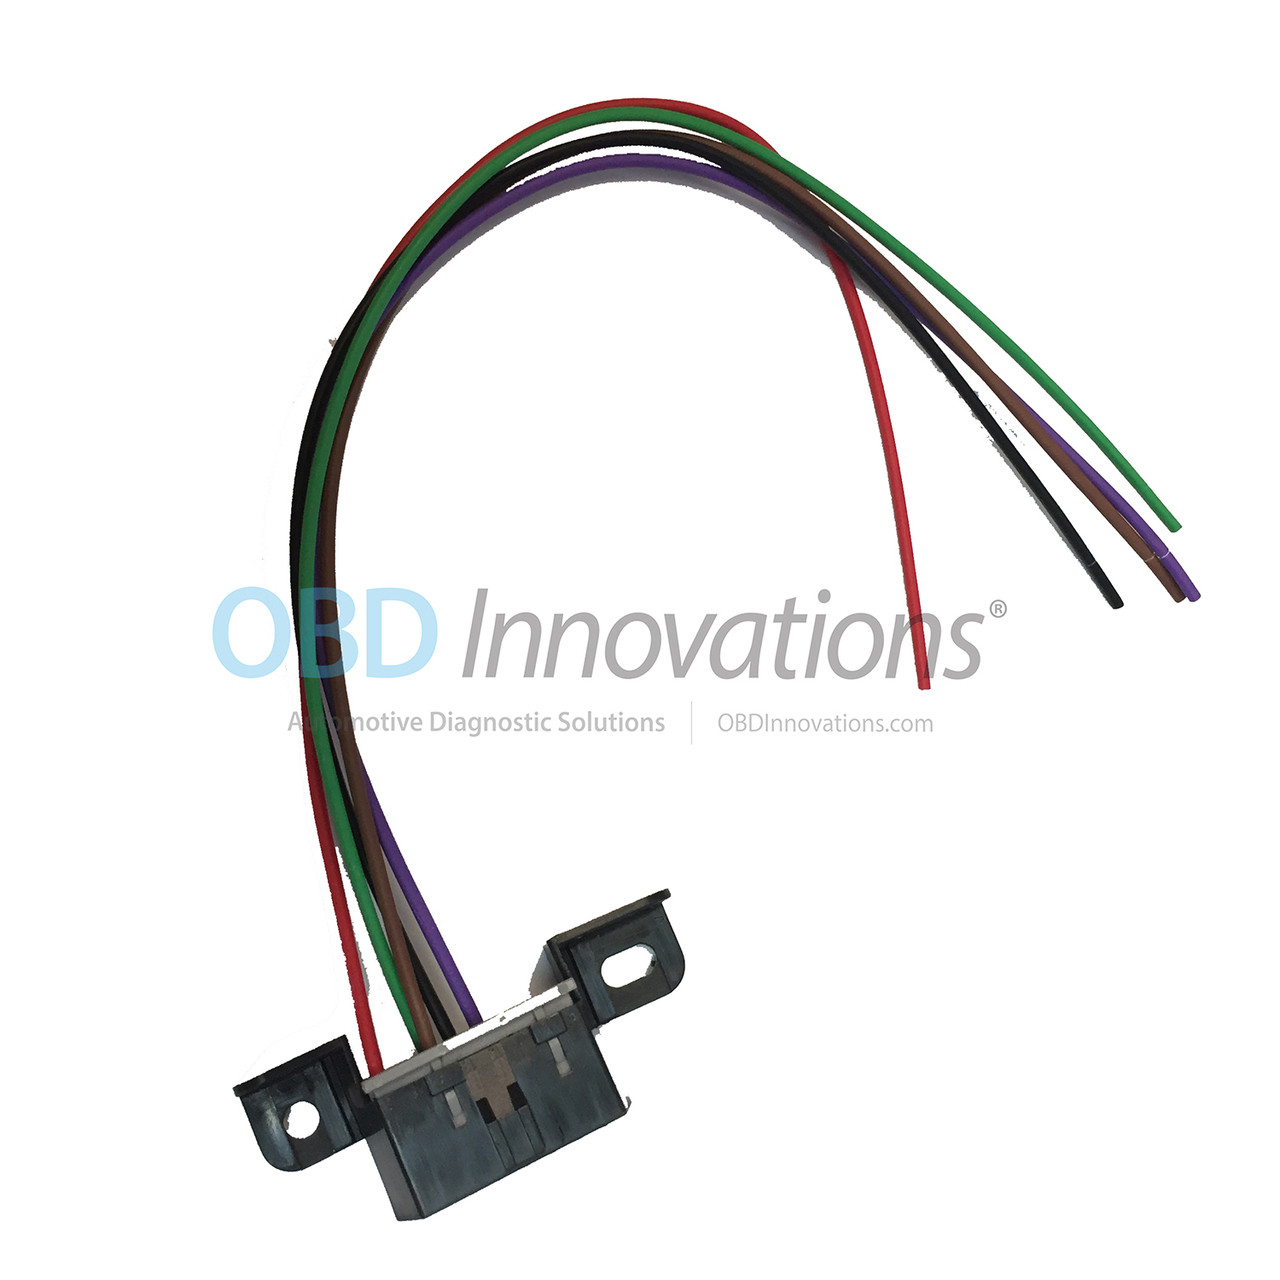 small resolution of obd2 j1962 dlc wiring harness can cars obd innovations computer wiring harness obd2 wiring harness